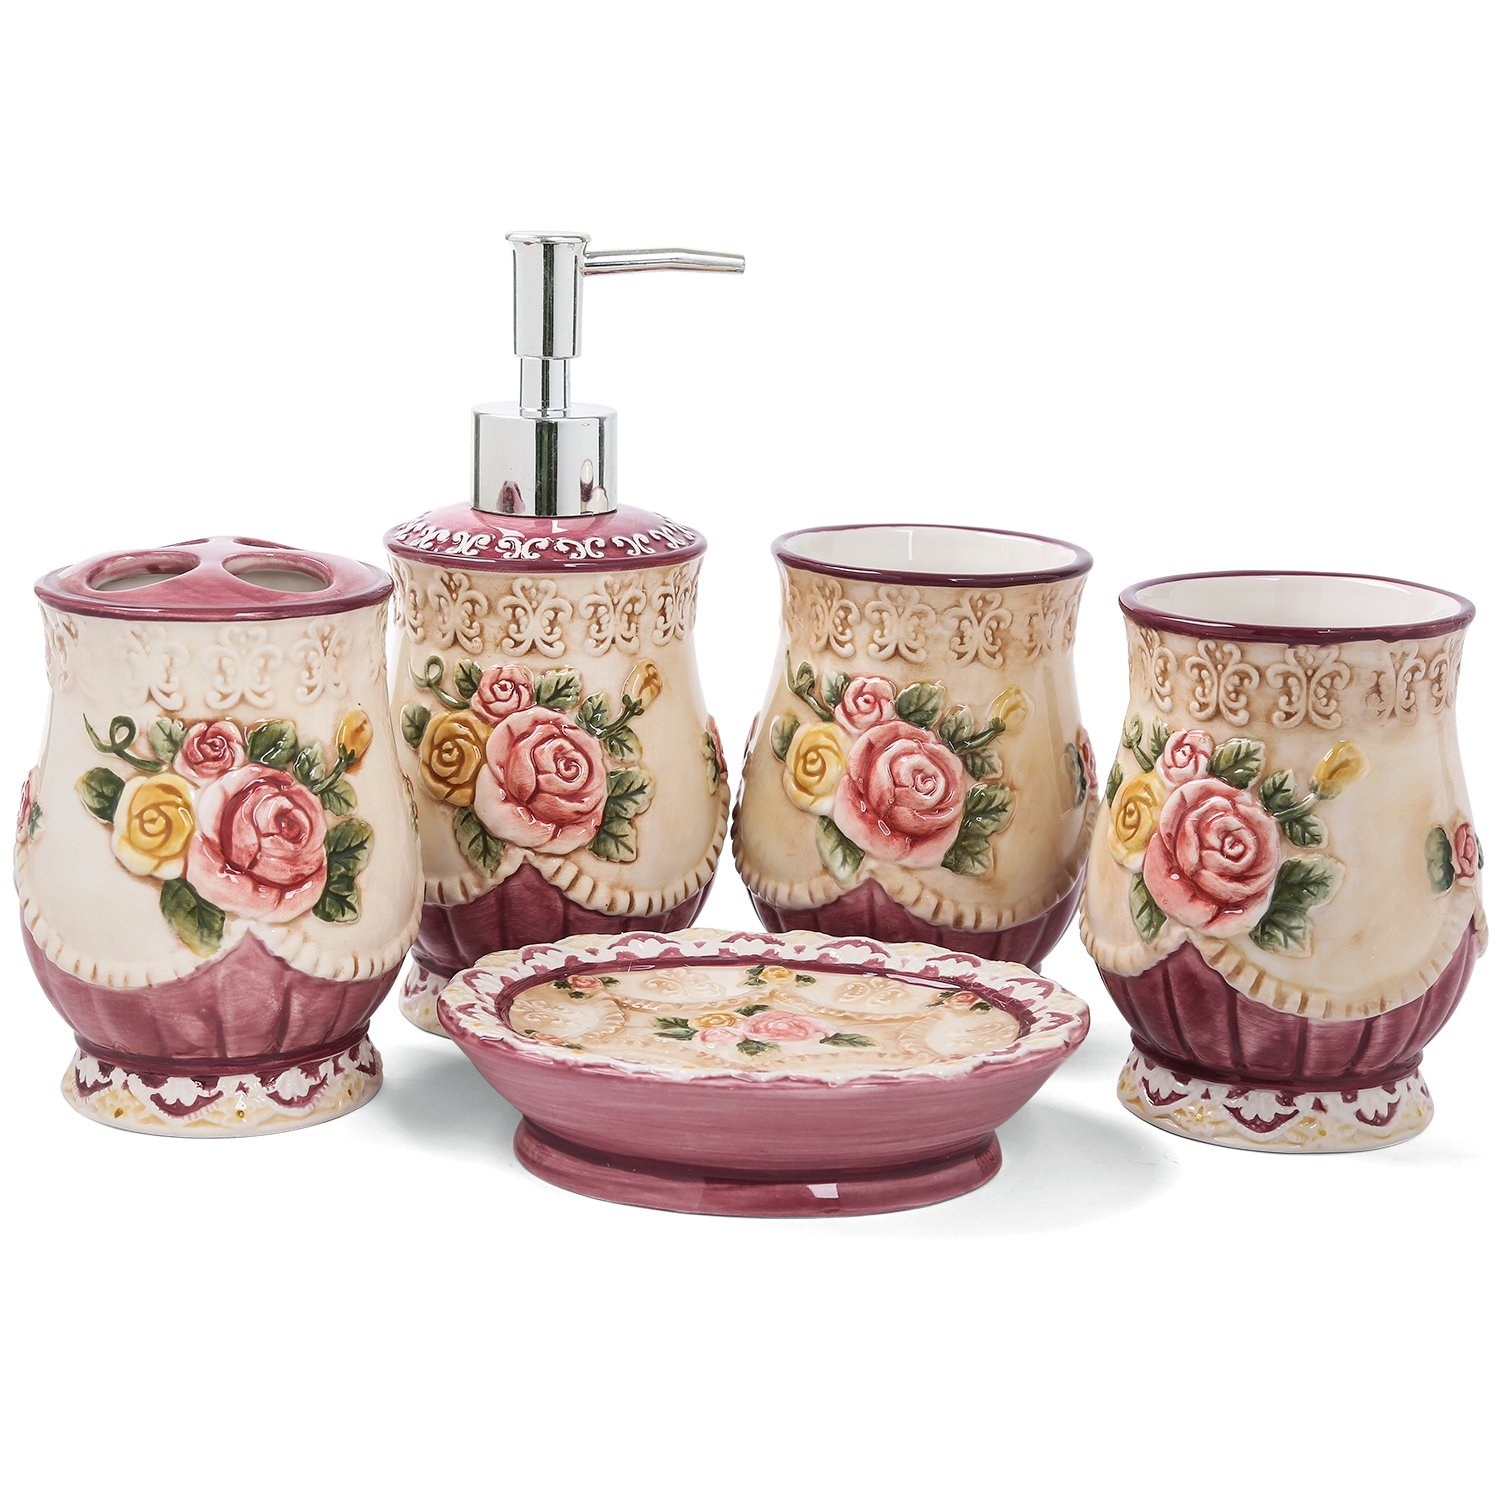 FORLONG Ceramic Bathroom Accessory Set Victorian Ceramic 5 Pieces Set,Including Toothbrush Holders,2 Gargle Tooth-Brushing Cups,Soap Dishes,Soap & Lotion Dispenser